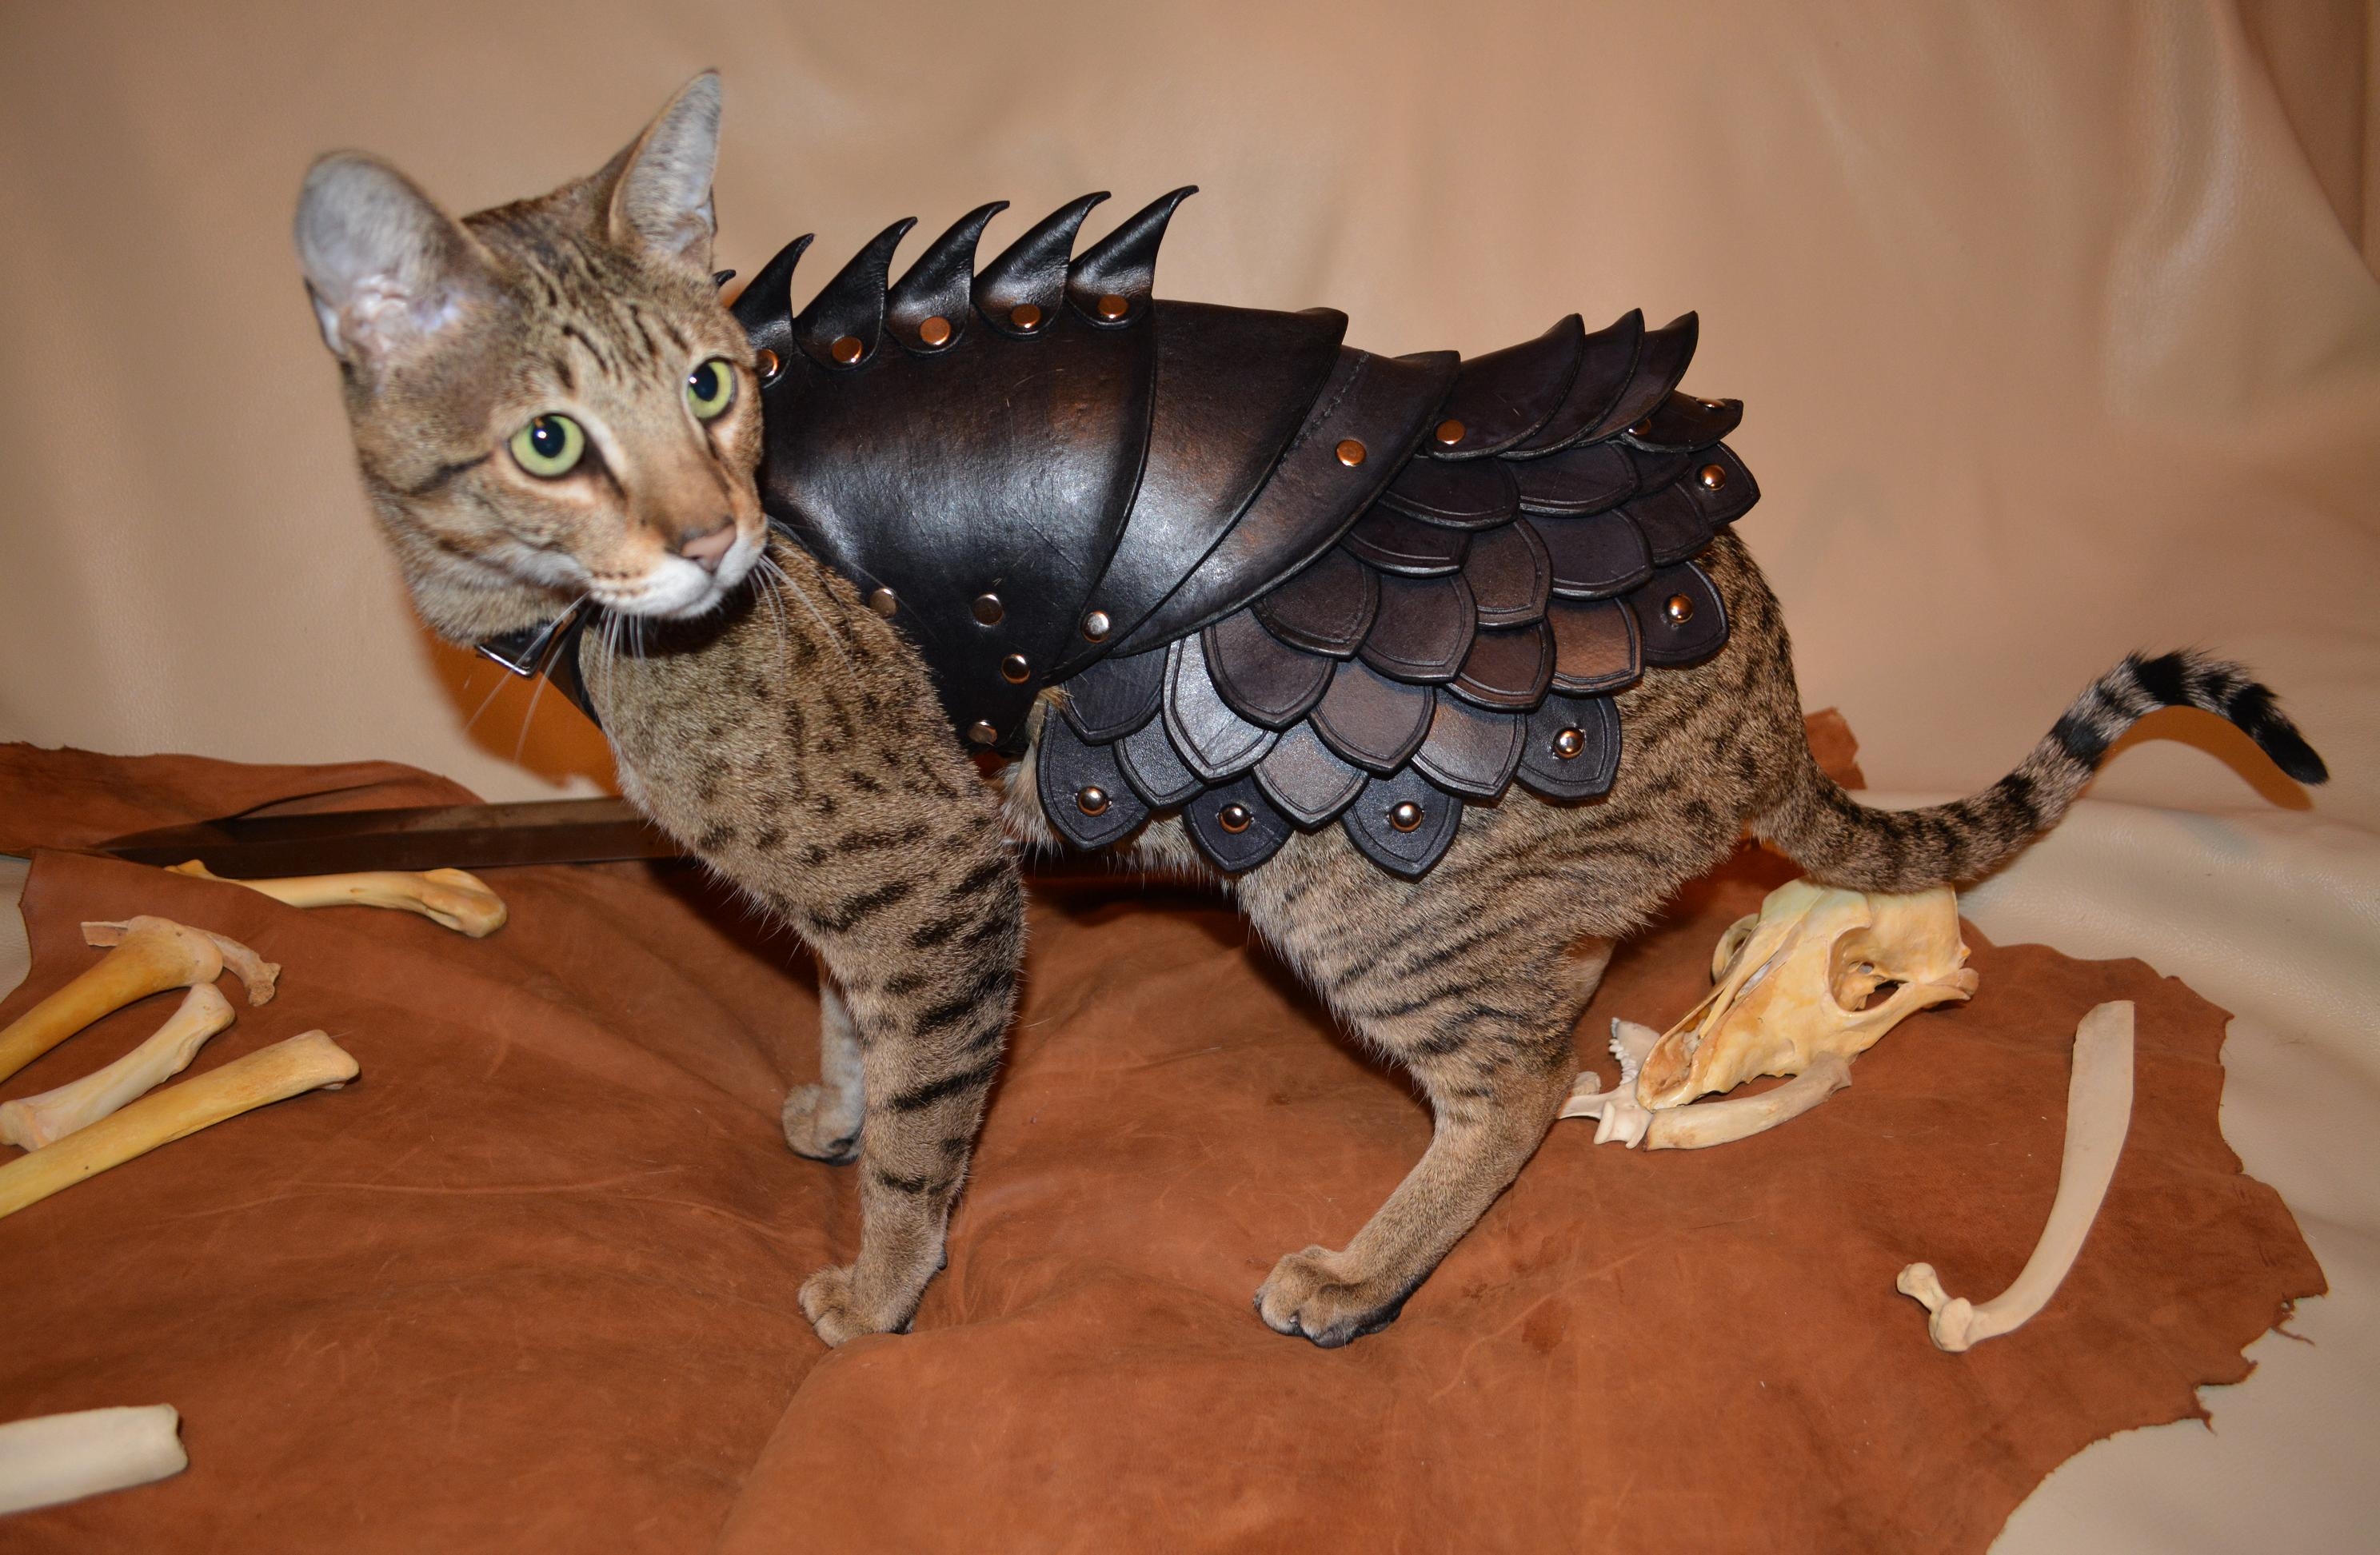 "{""author"":""SavagePunkStudio"",""link"":""http%3A//savagepunkstudio.deviantart.com/art/Cat-Battle-Armor-2-425705901"",""descr"":""доспехи%20кота""}"